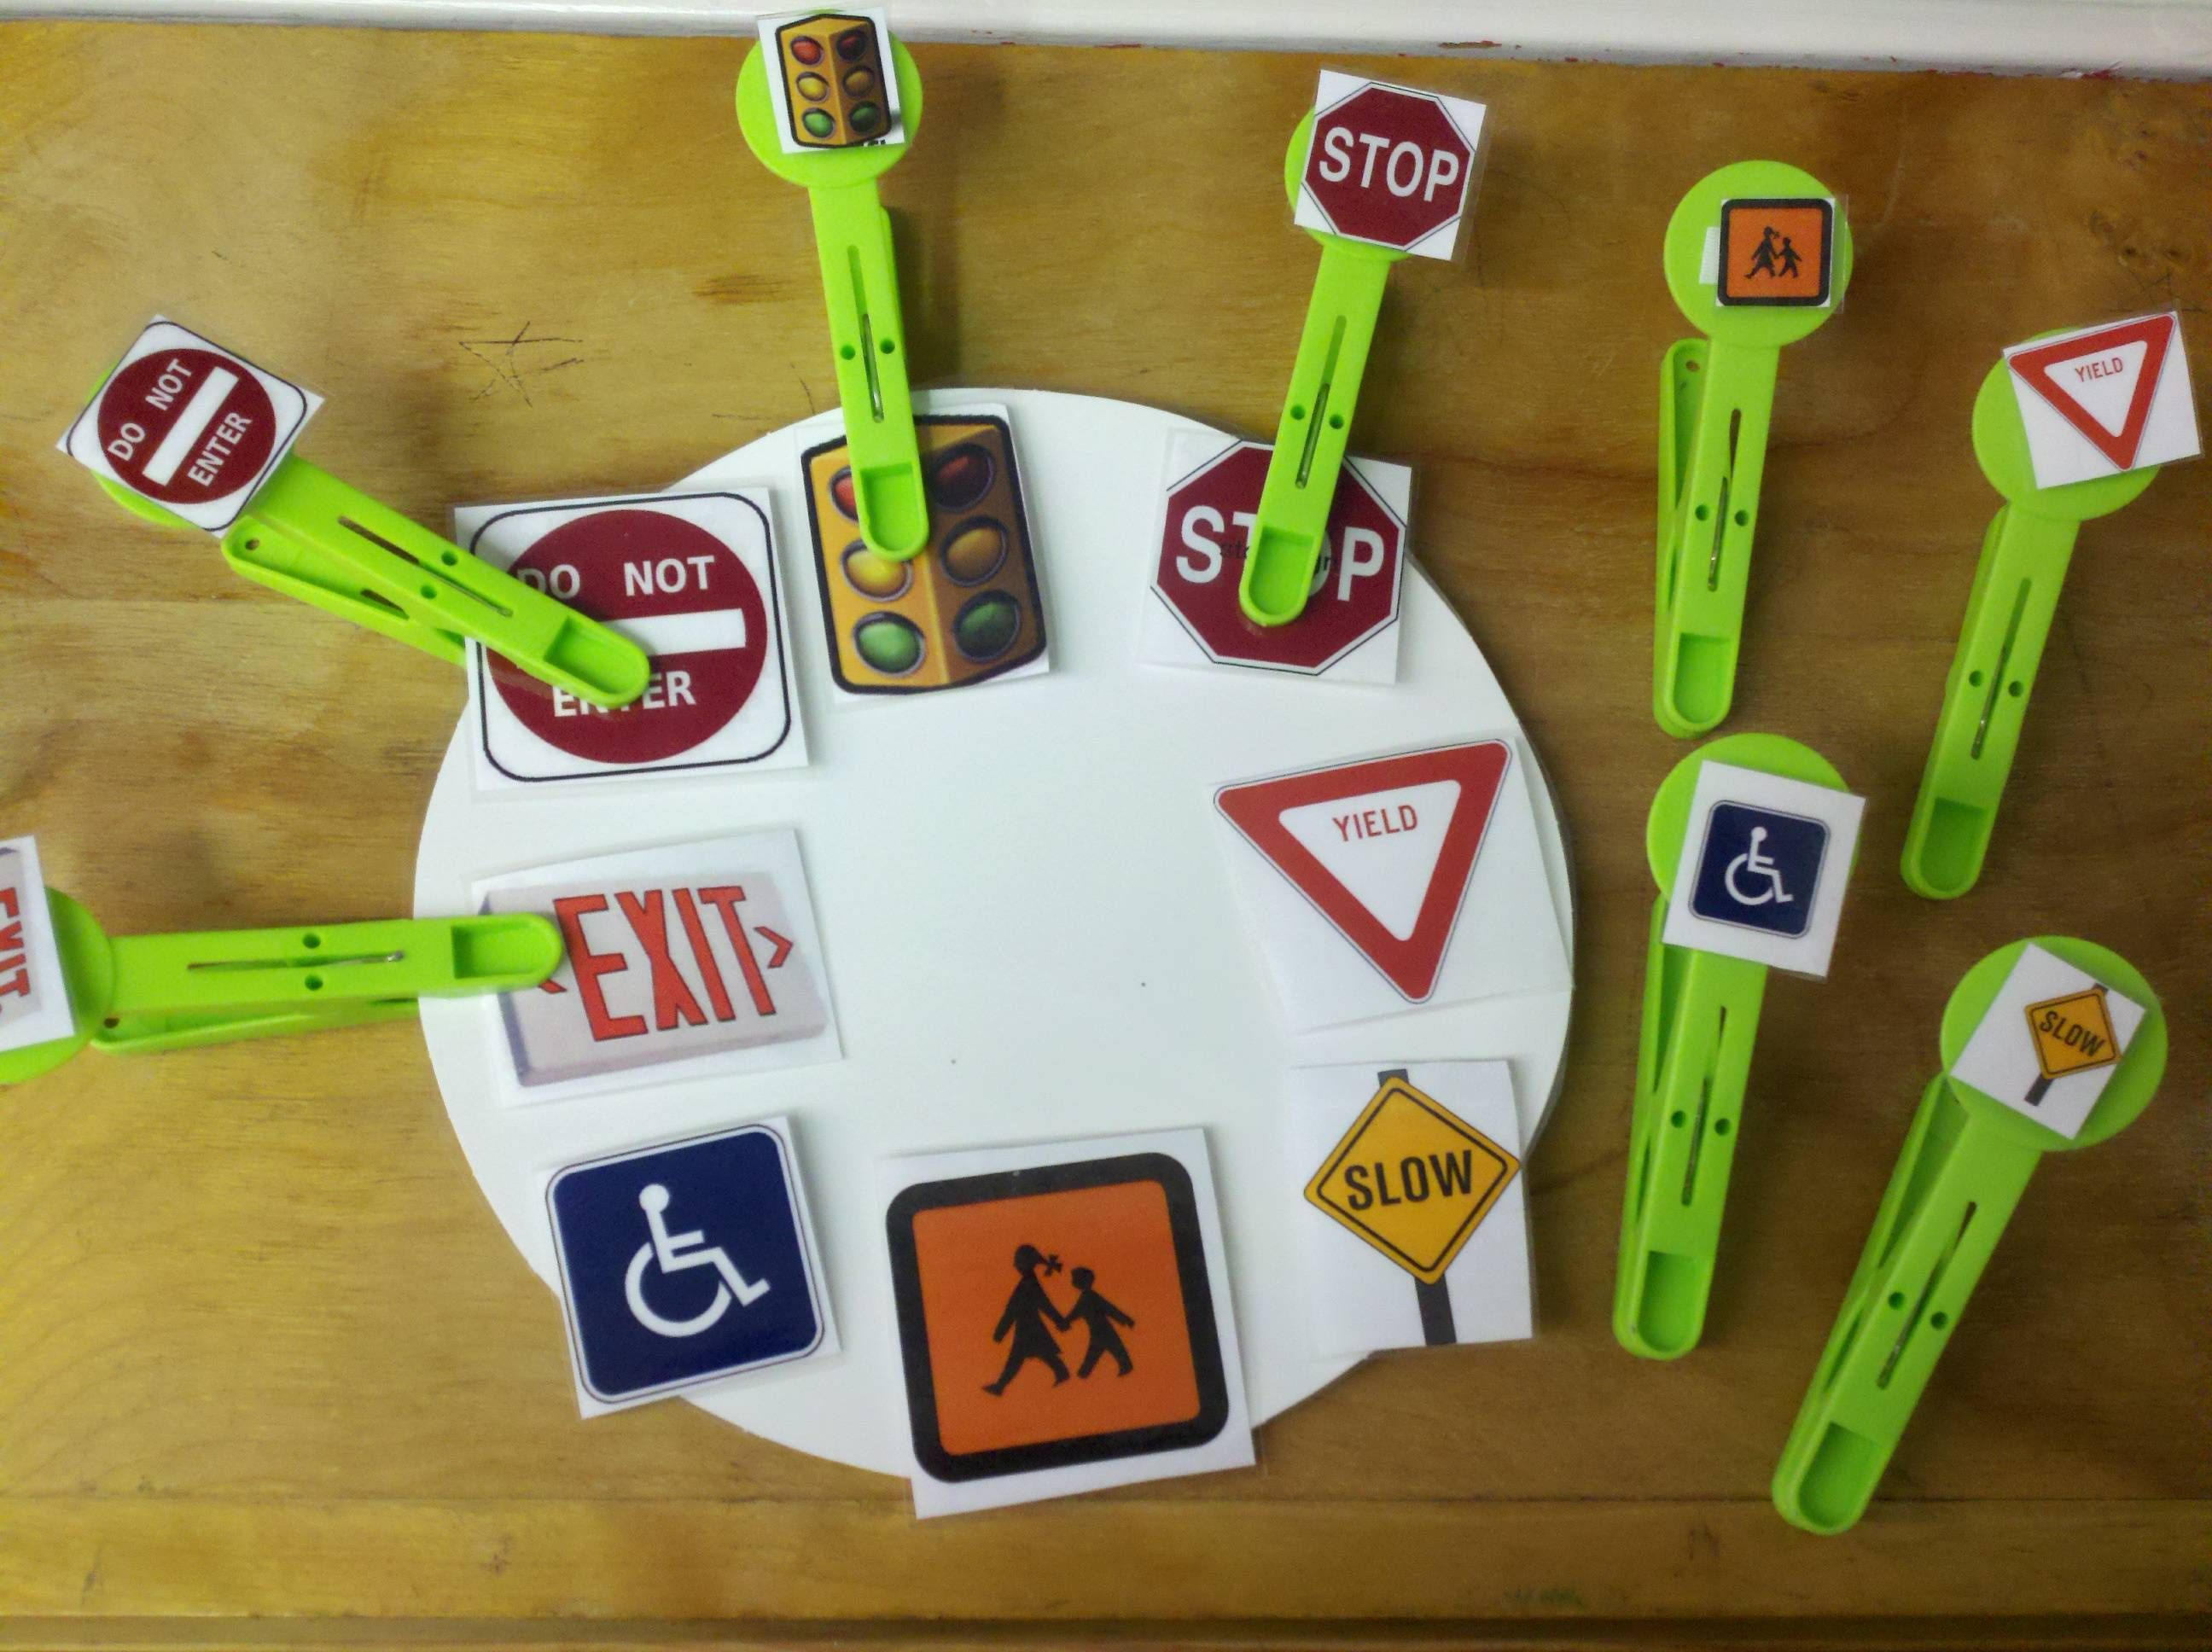 Love This Idea For A Matching Activity Great Way To Work On Signs And Make It More Functional